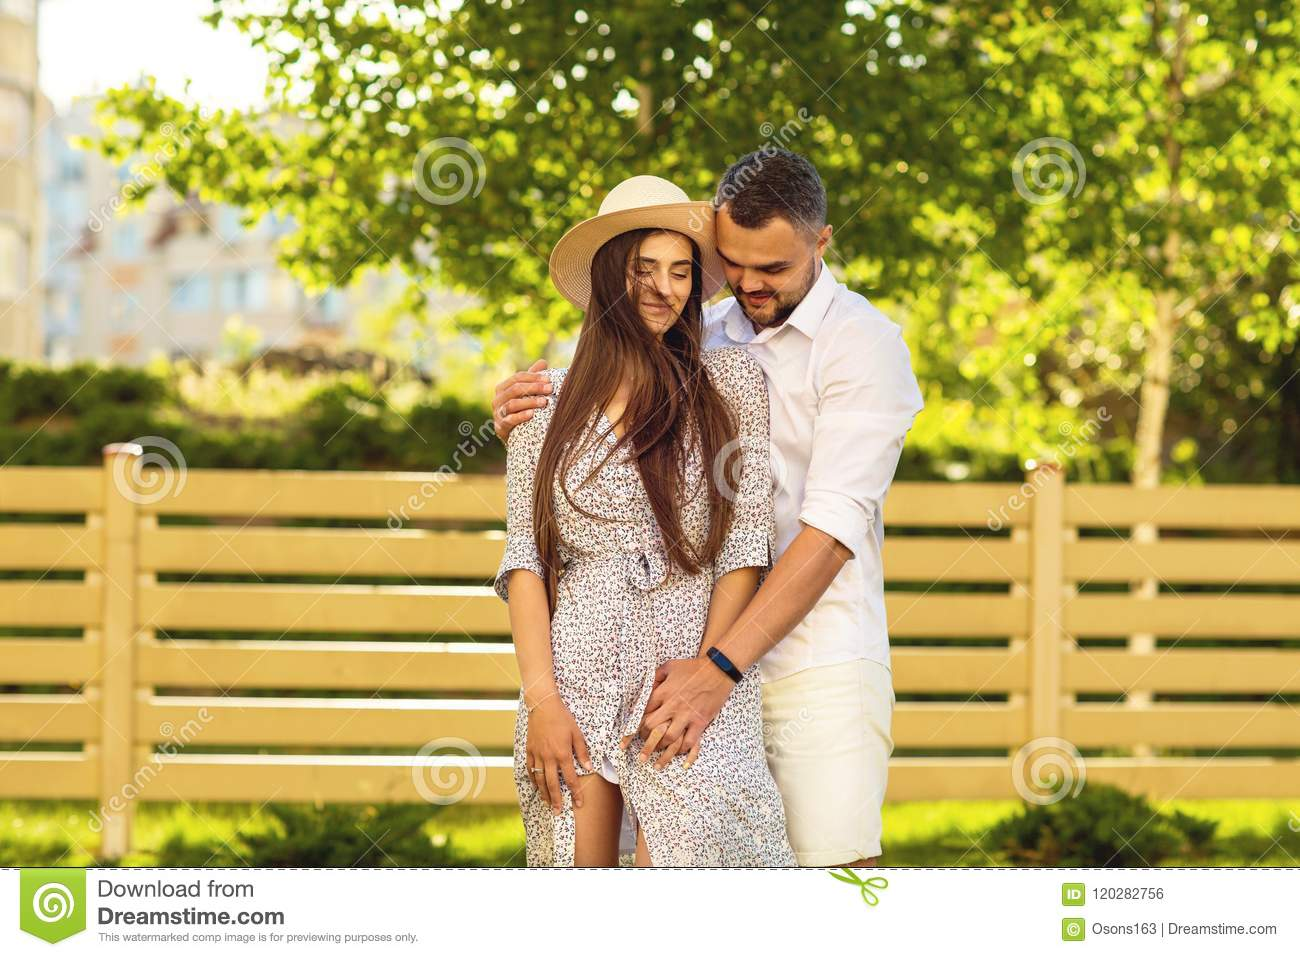 couple in love at sunset walking in the park happy, American dream. The concept of family values.